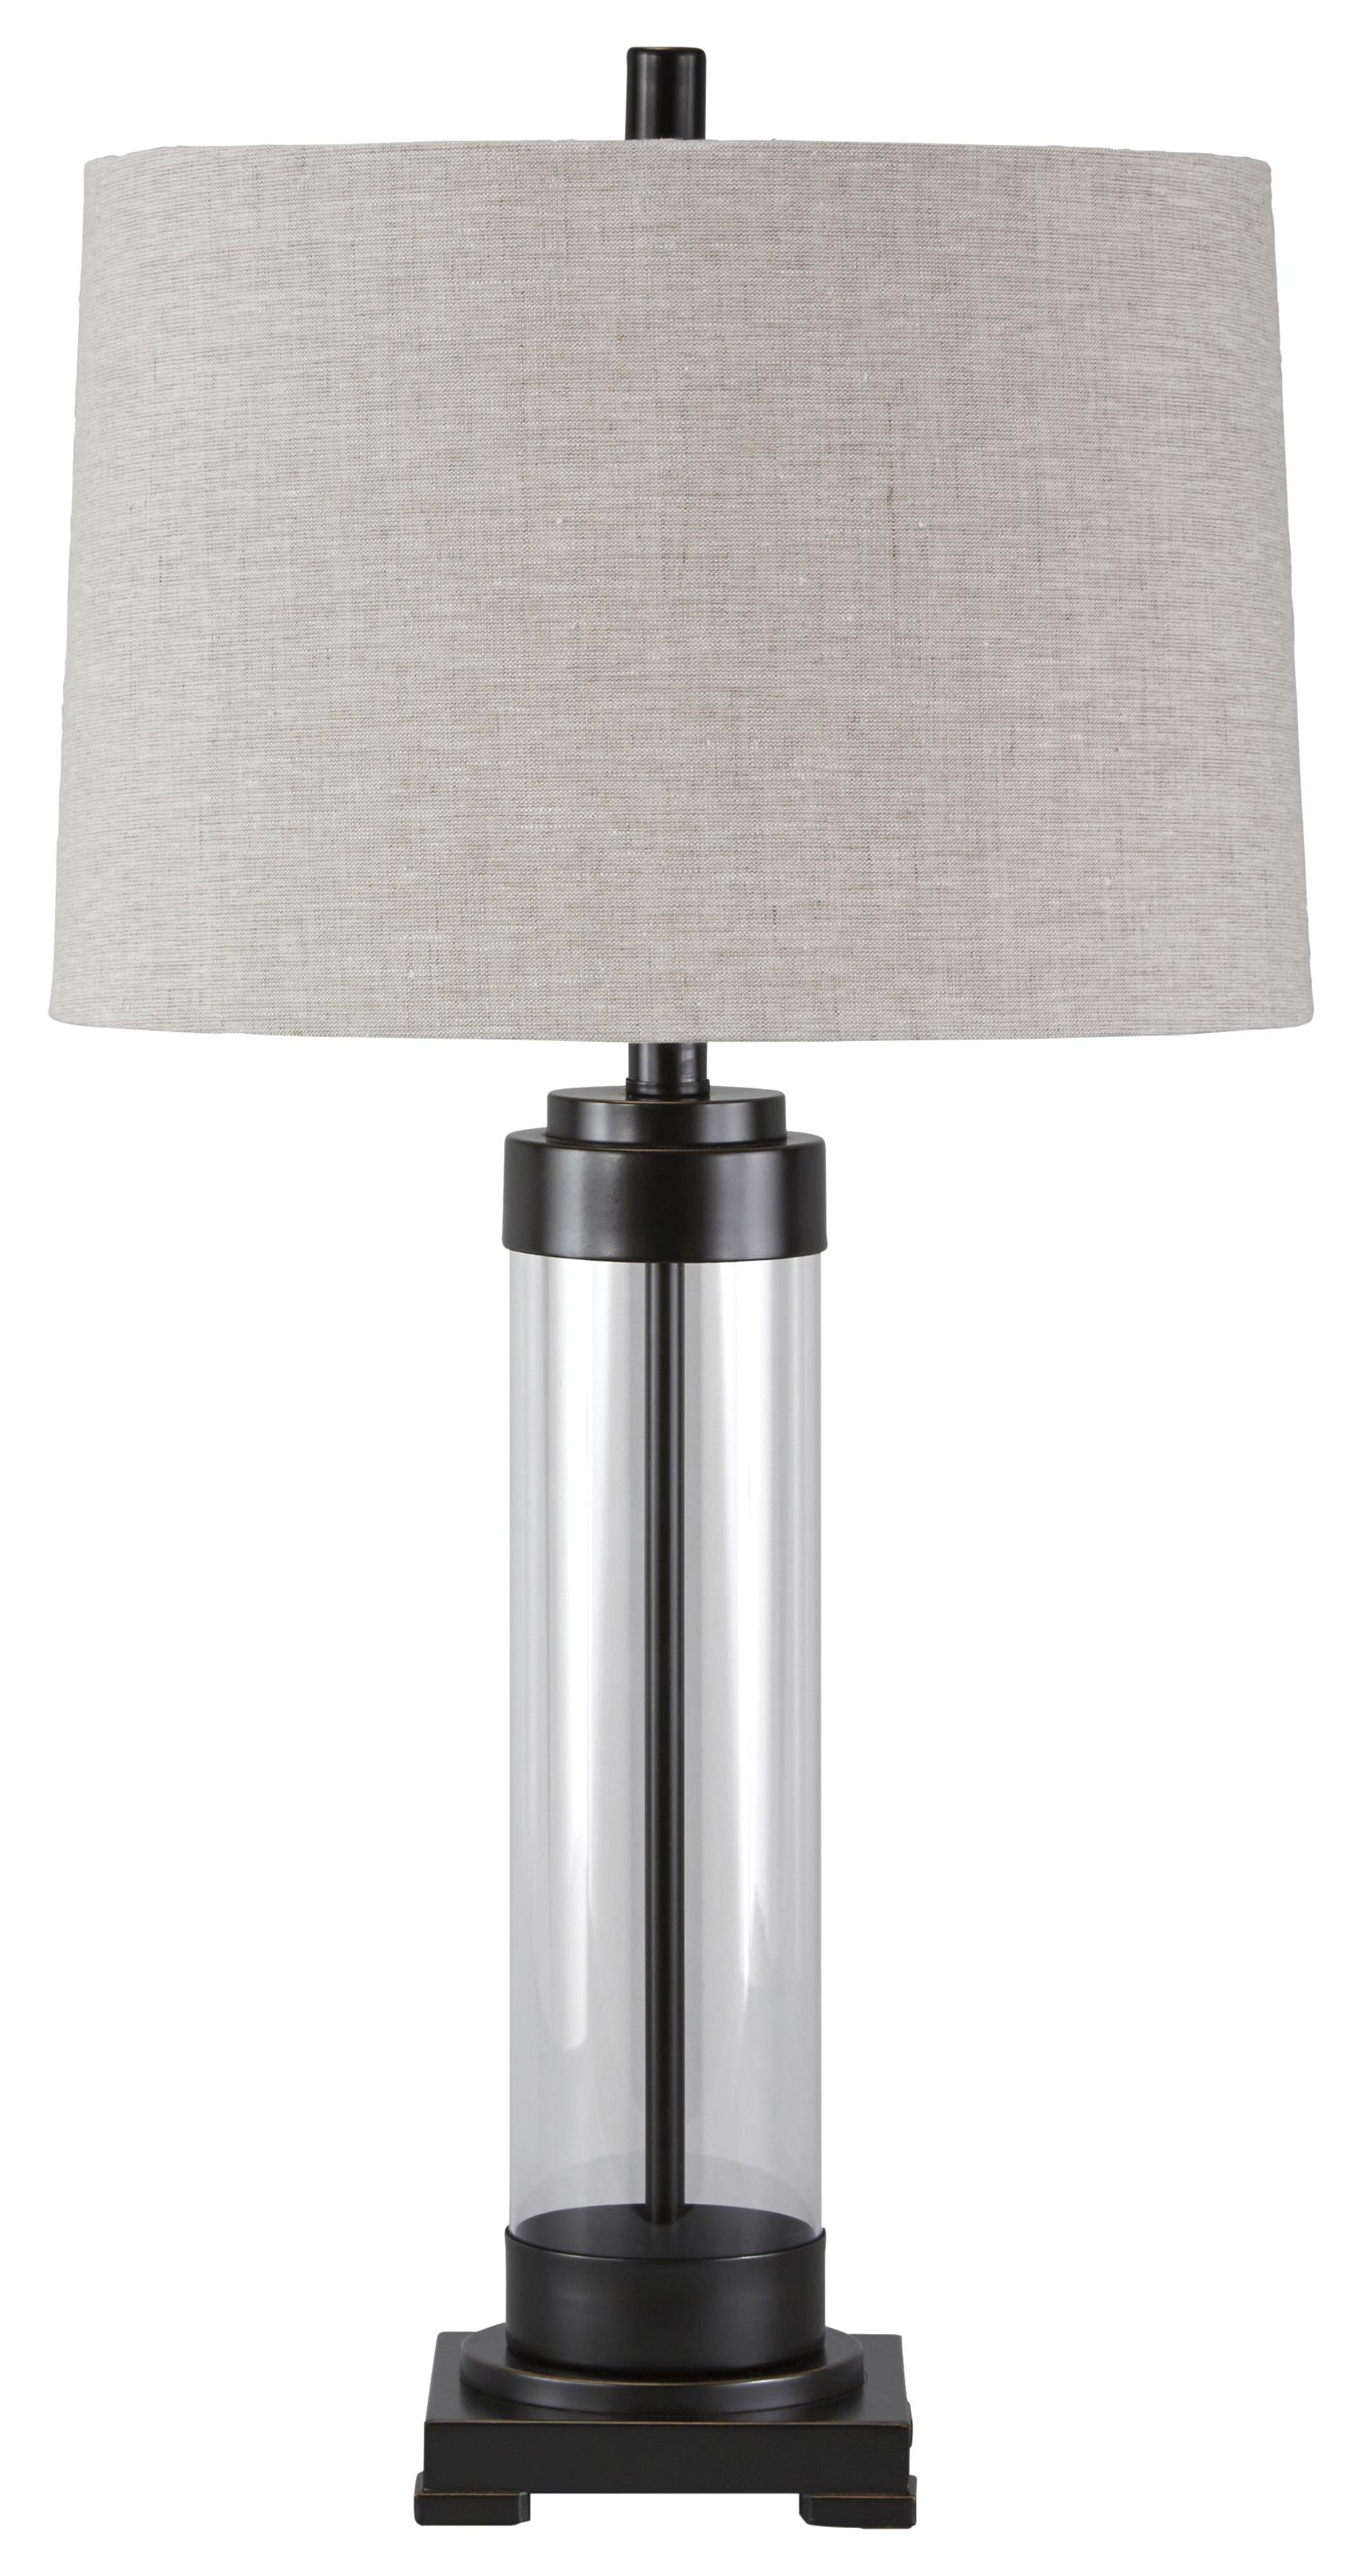 Lamps - Vintage Style Talar Glass Table Lamp by Signature Design by Ashley at Smart Buy Furniture